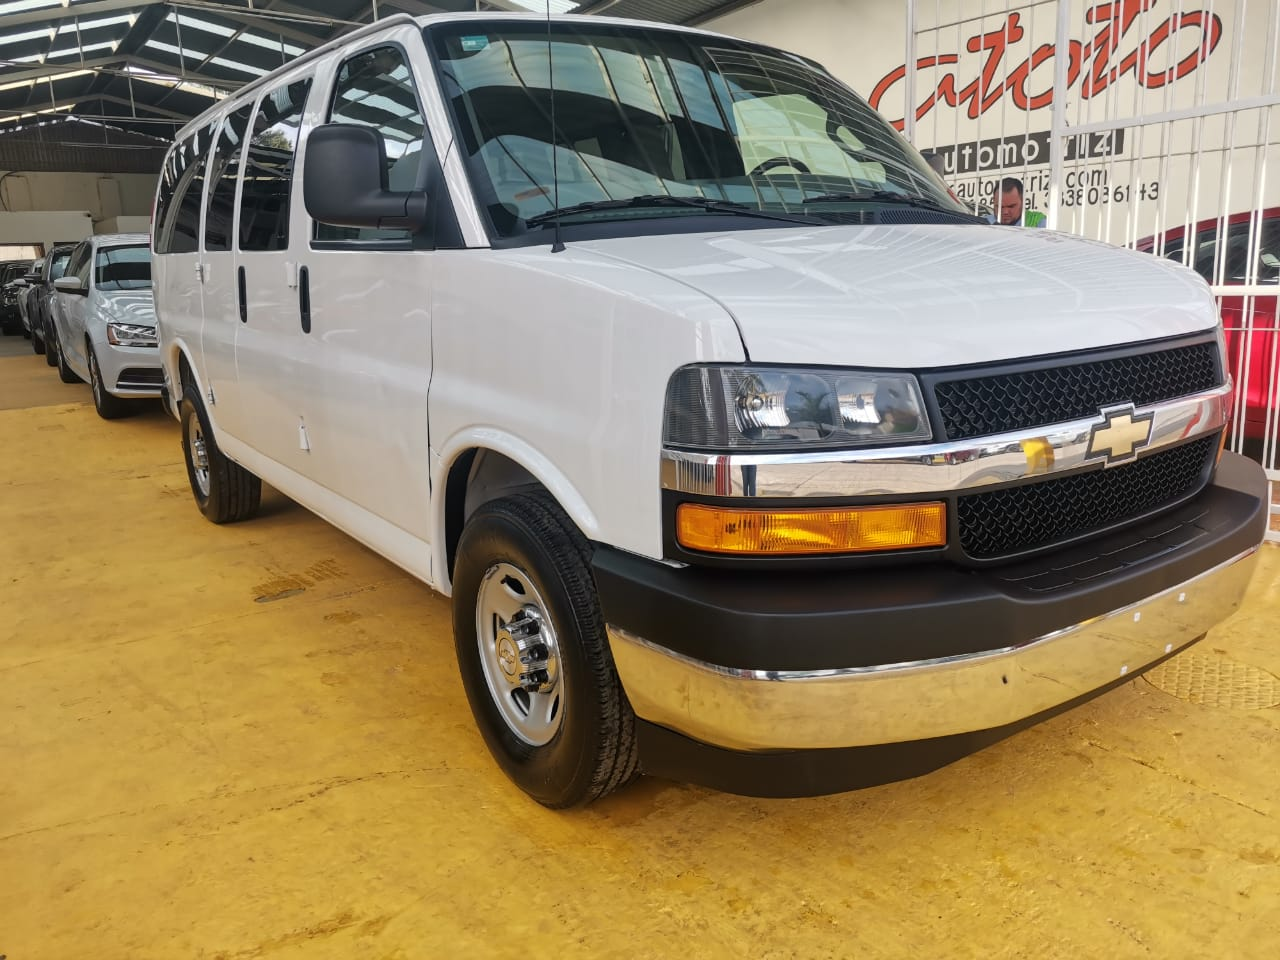 Chevrolet Express, 2018 Ls L 12 Pas At lleno